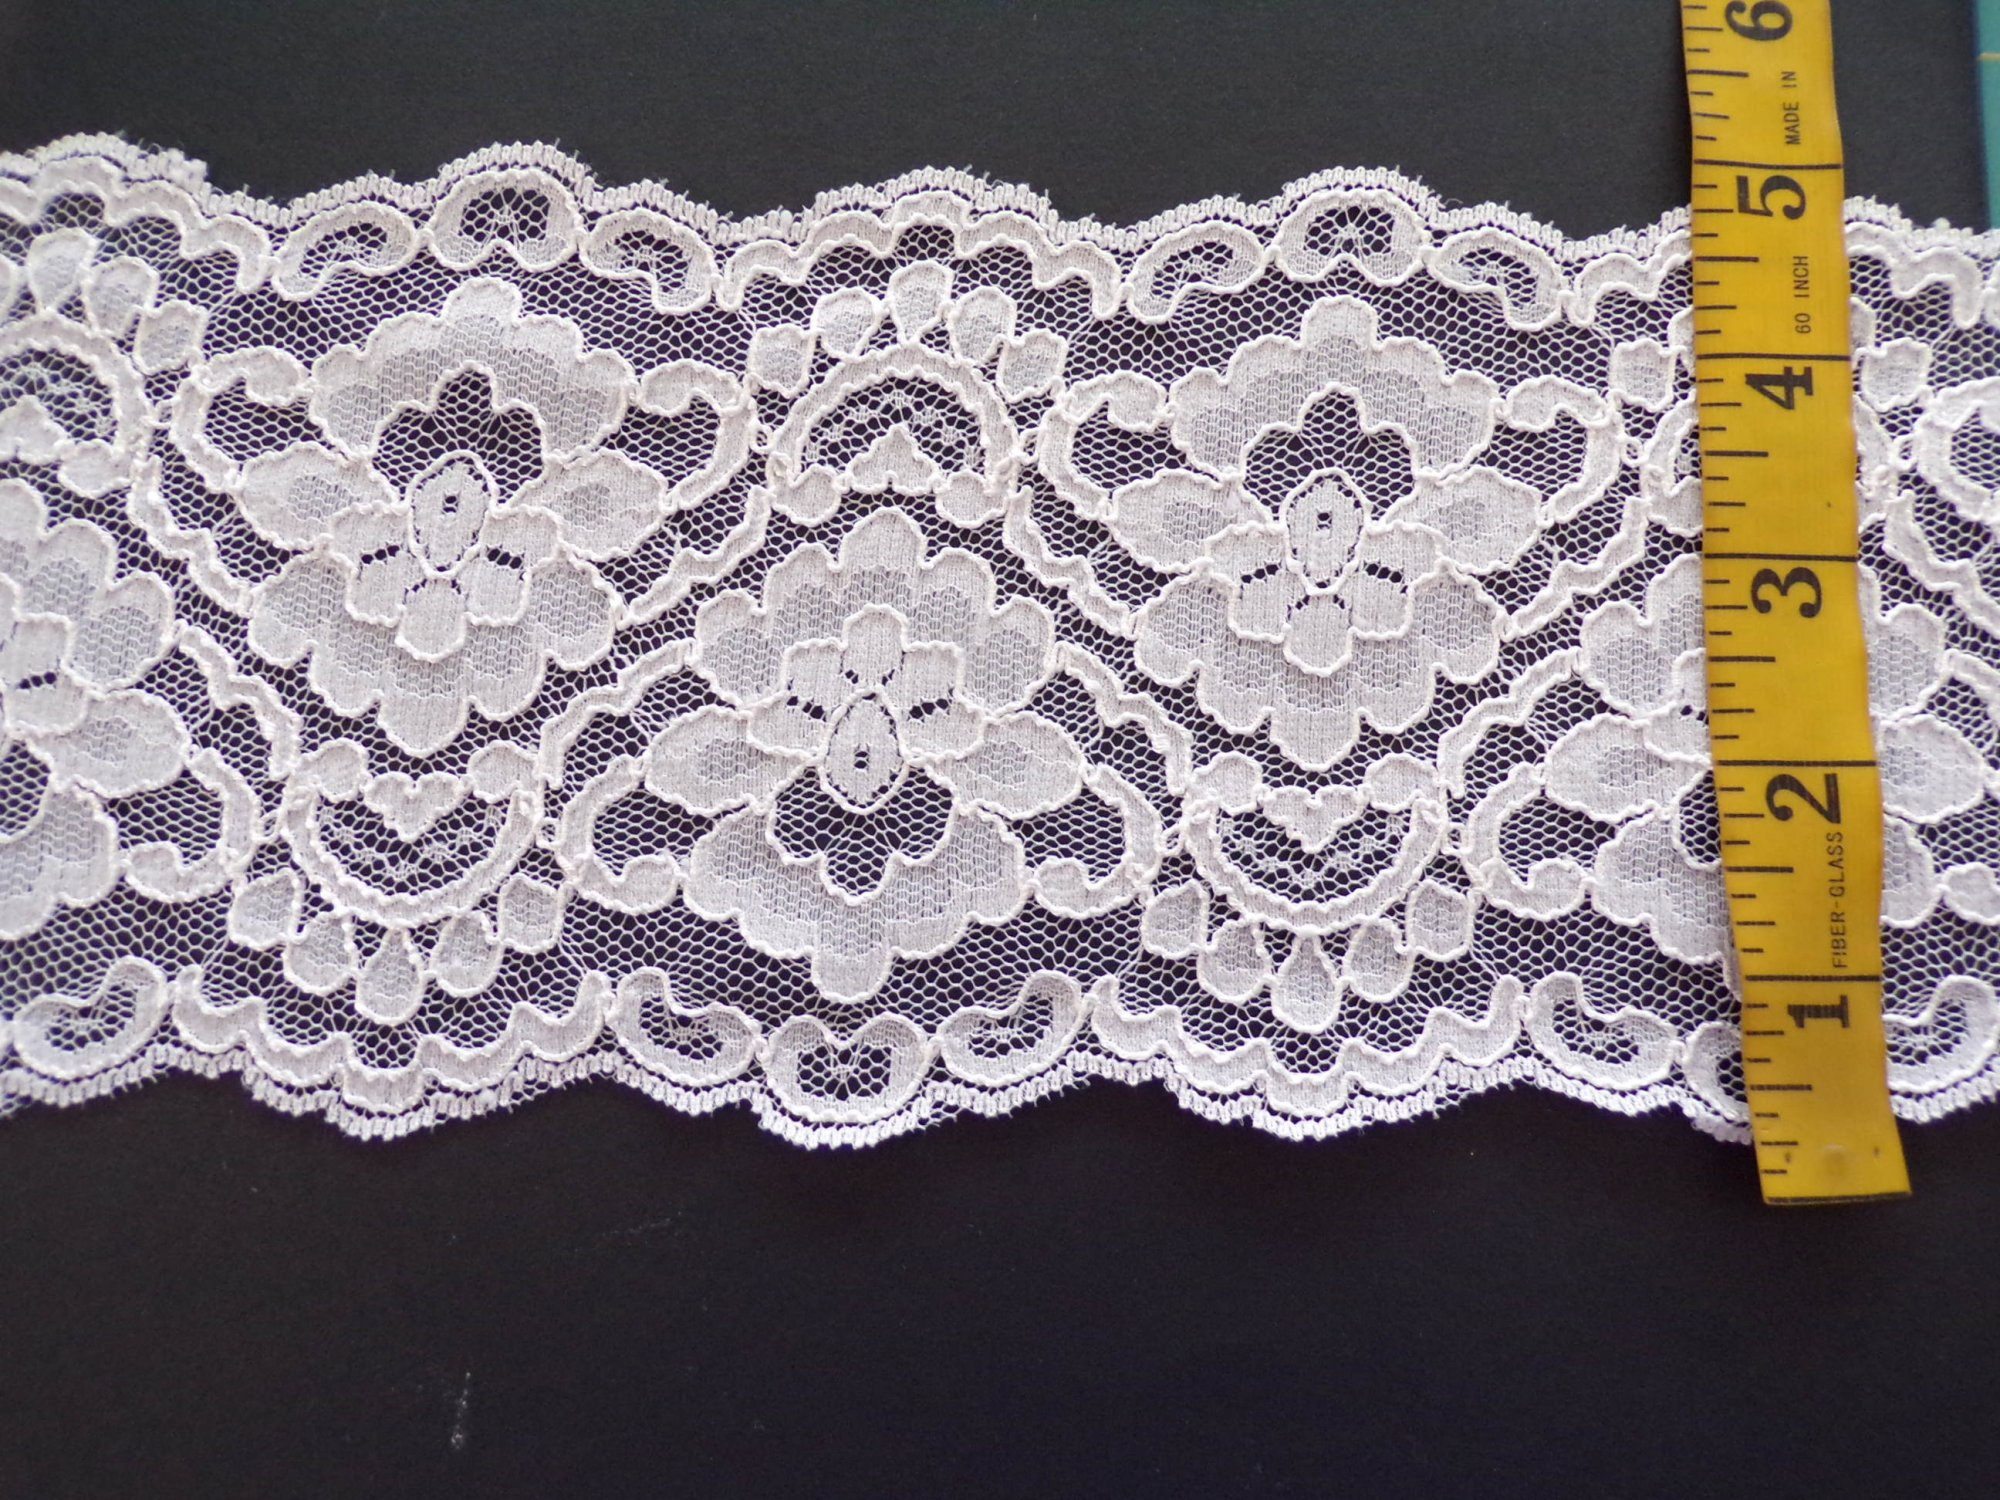 5 Ivory Re-Embroidered Rigid Lace